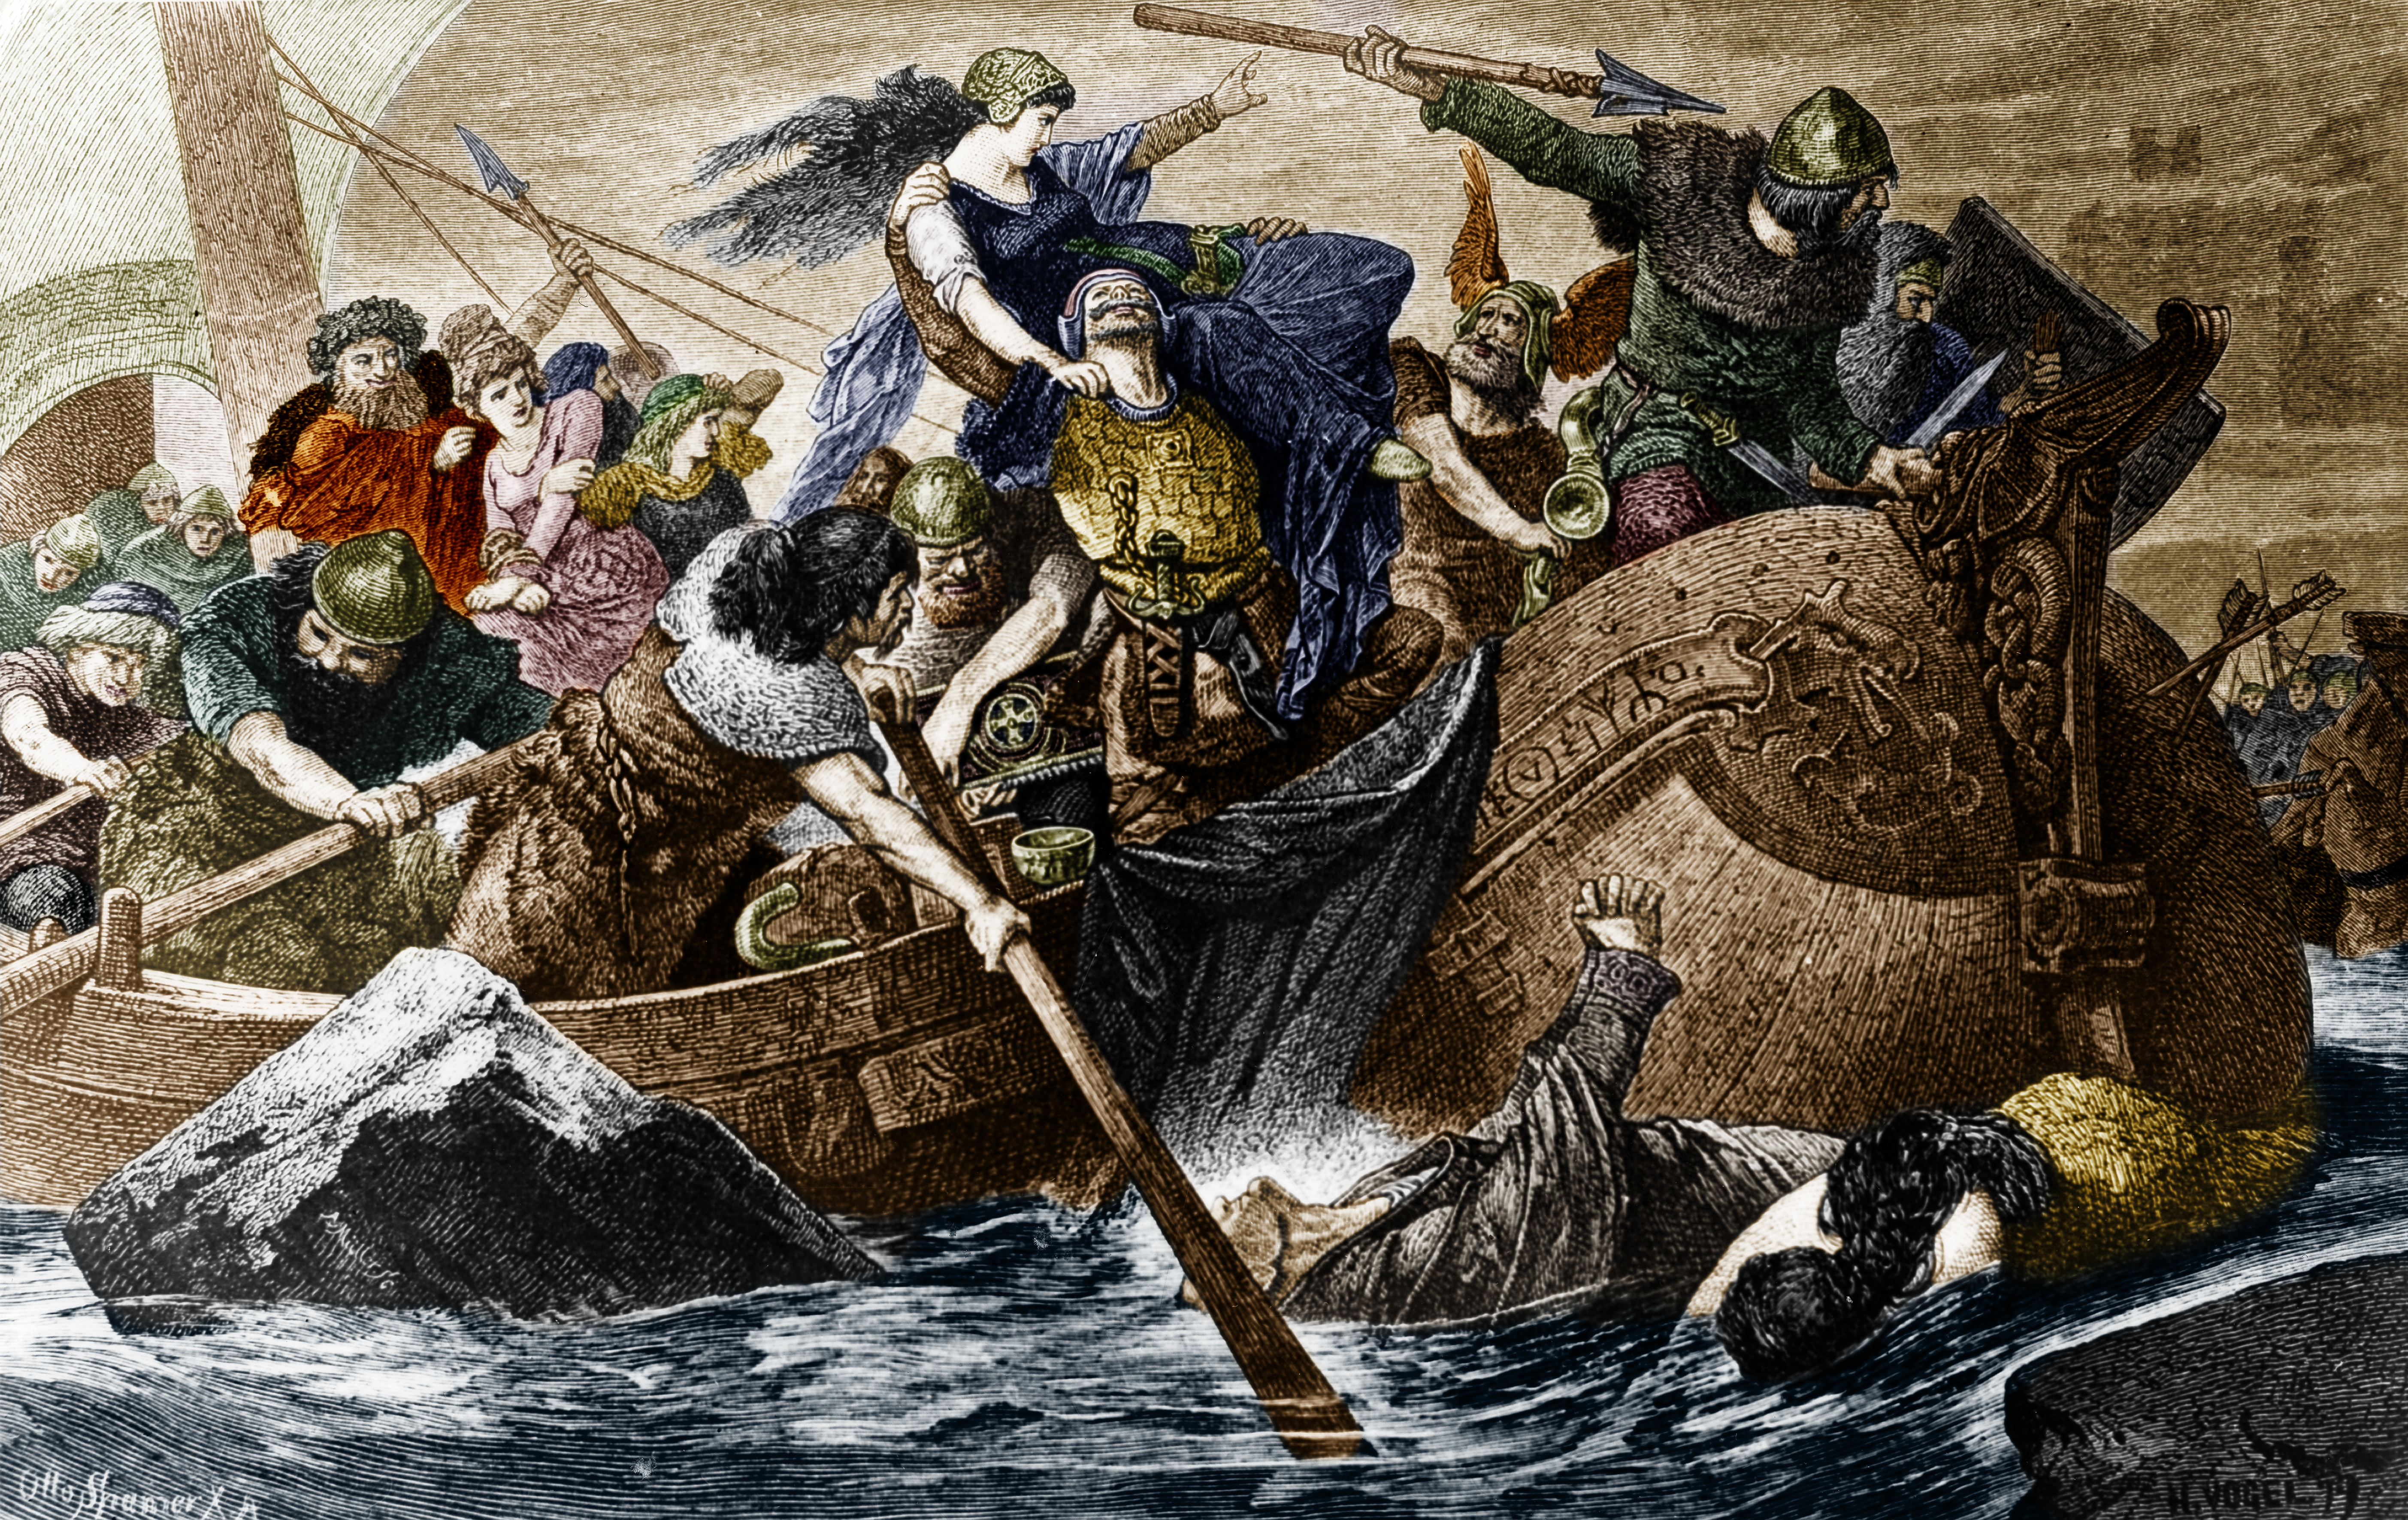 Vikings or Normanns landing at a beach before a raid Digitally colorized. Original: image no 00017140 - no date (cir. 800)